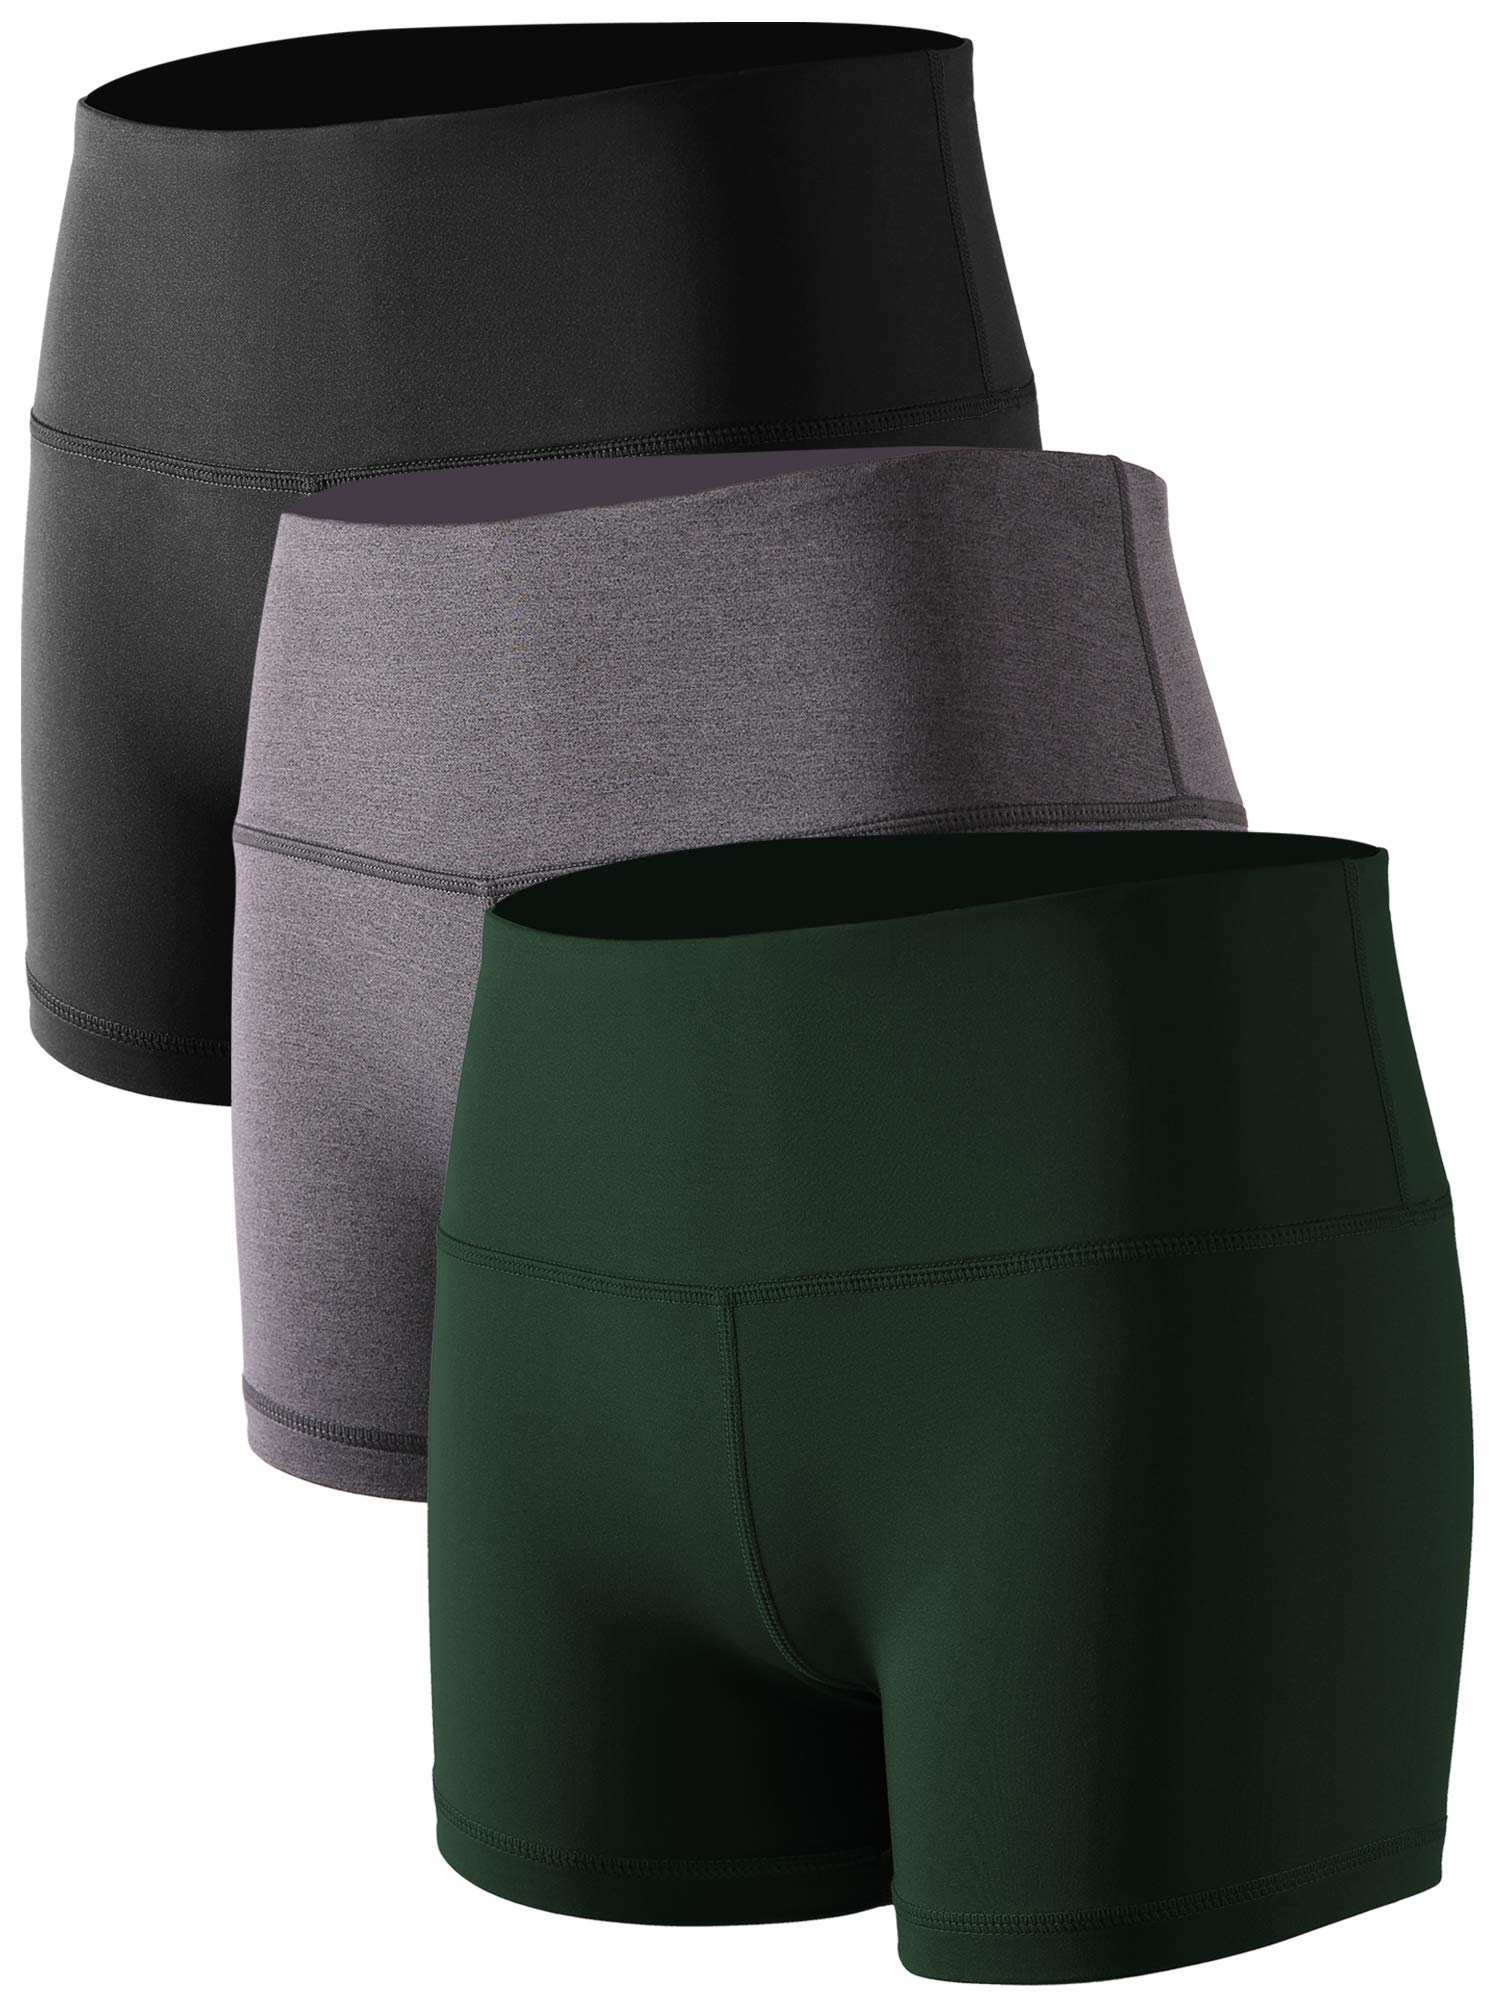 Cadmus Women's High Waist Athletic Sport Workout Shorts with Pocket,3 Pack,05,Black,Grey,Dark Green,Small by Cadmus